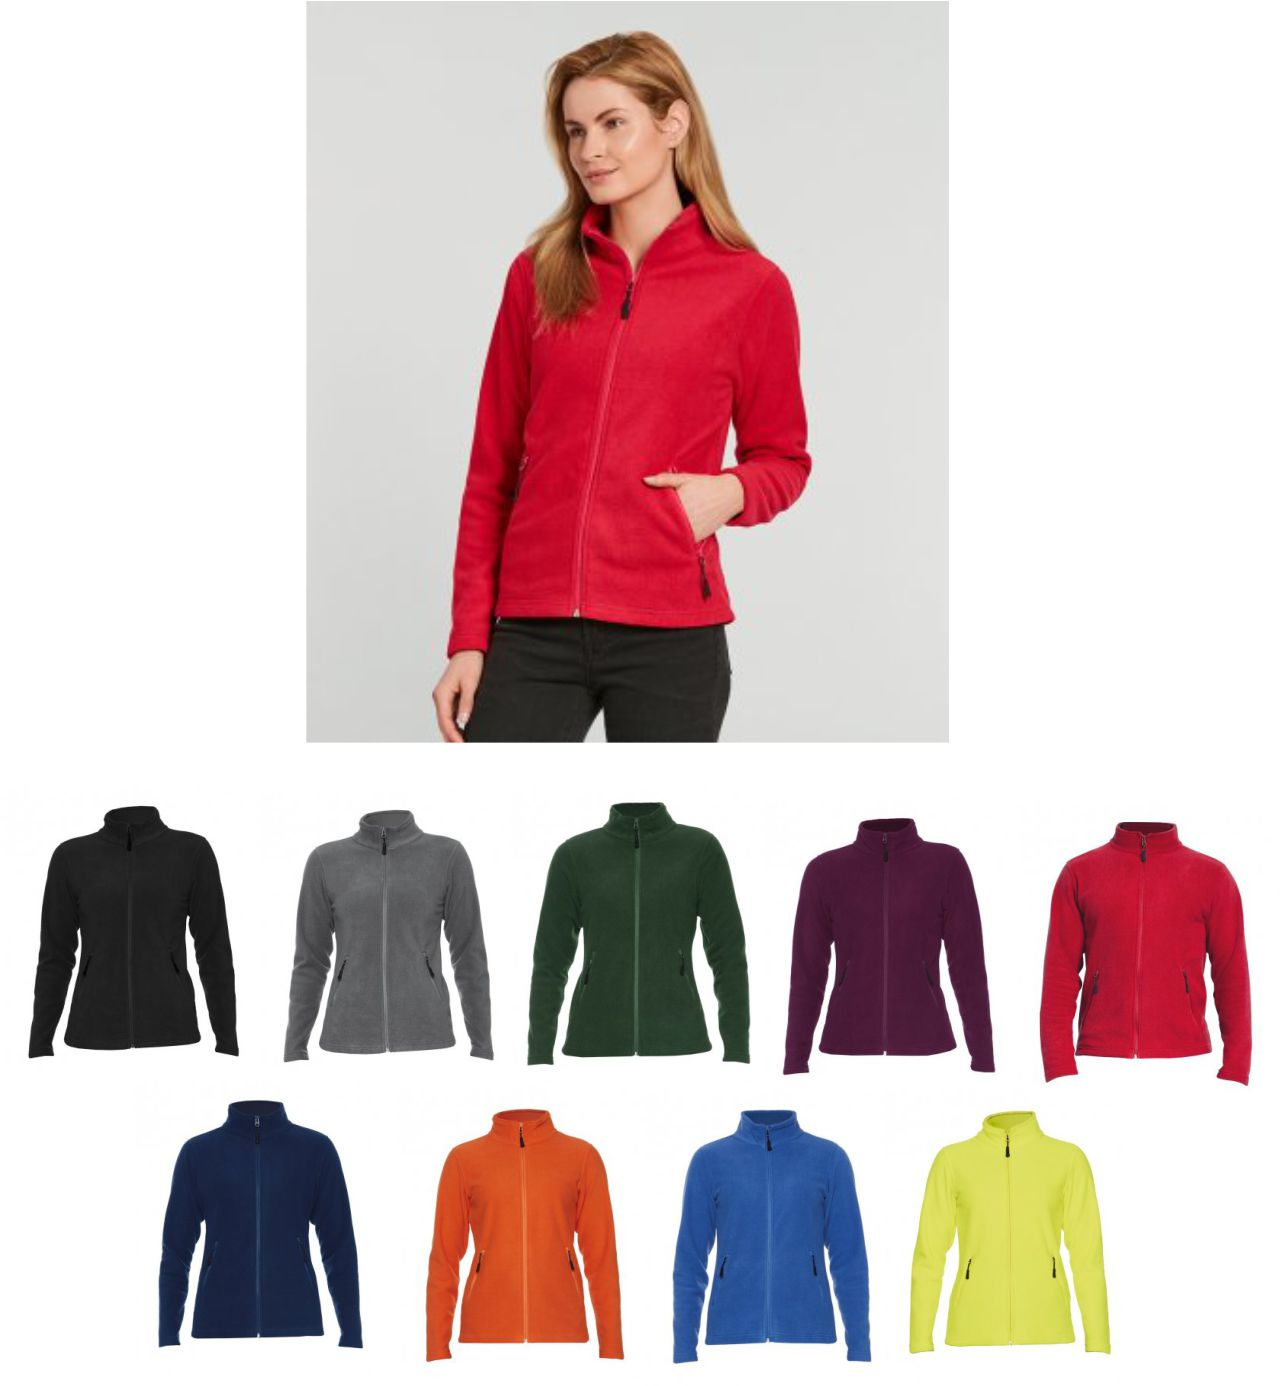 GH111 Gildan Hammer Ladies Micro Fleece Jacket